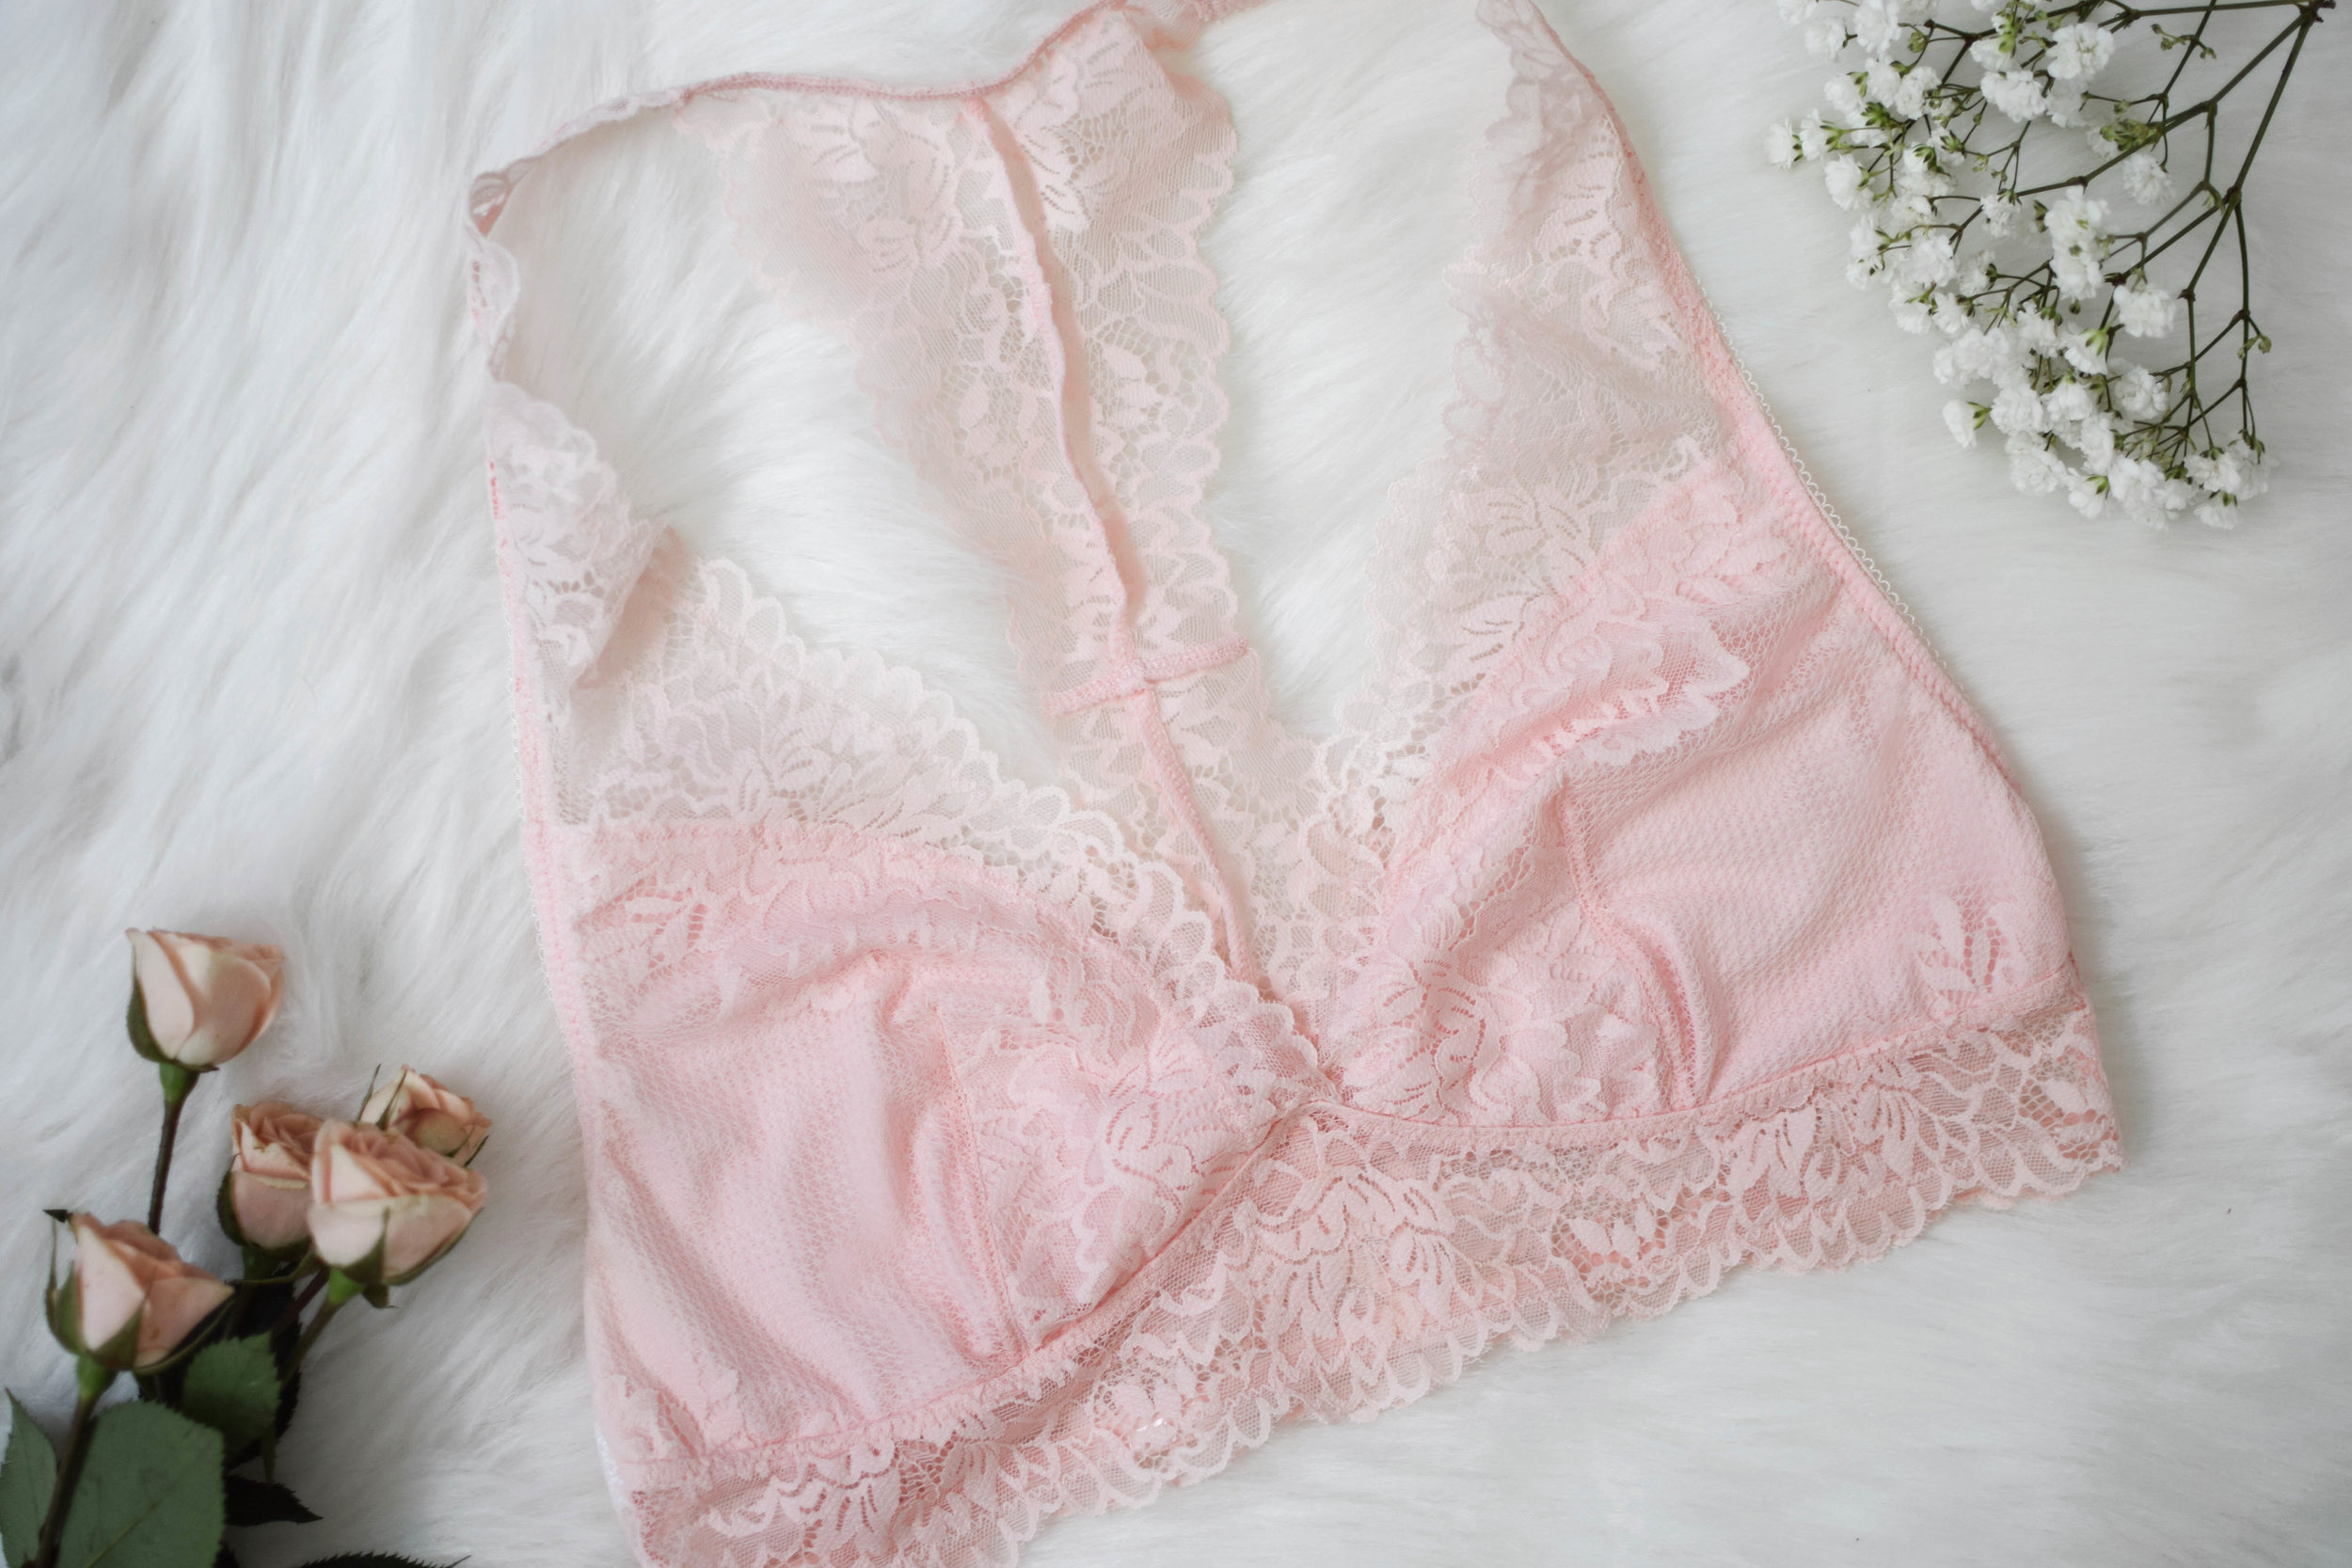 blush lace bralette from kohl's